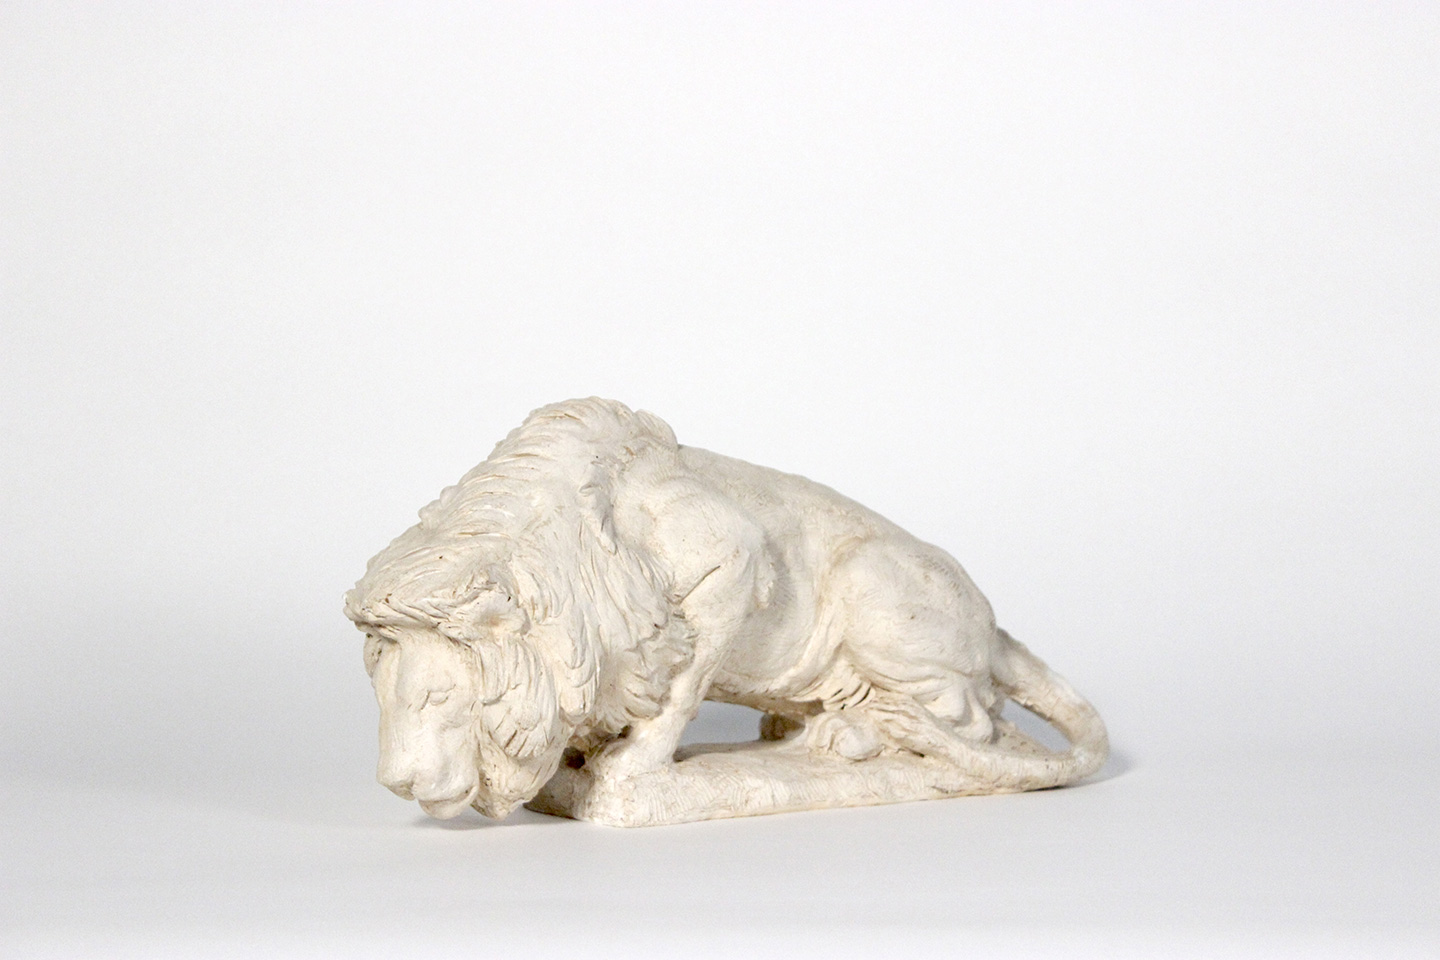 Lion maquette by Raymond Kaskey for a sculpture at the National Law Enforcement Memorila.